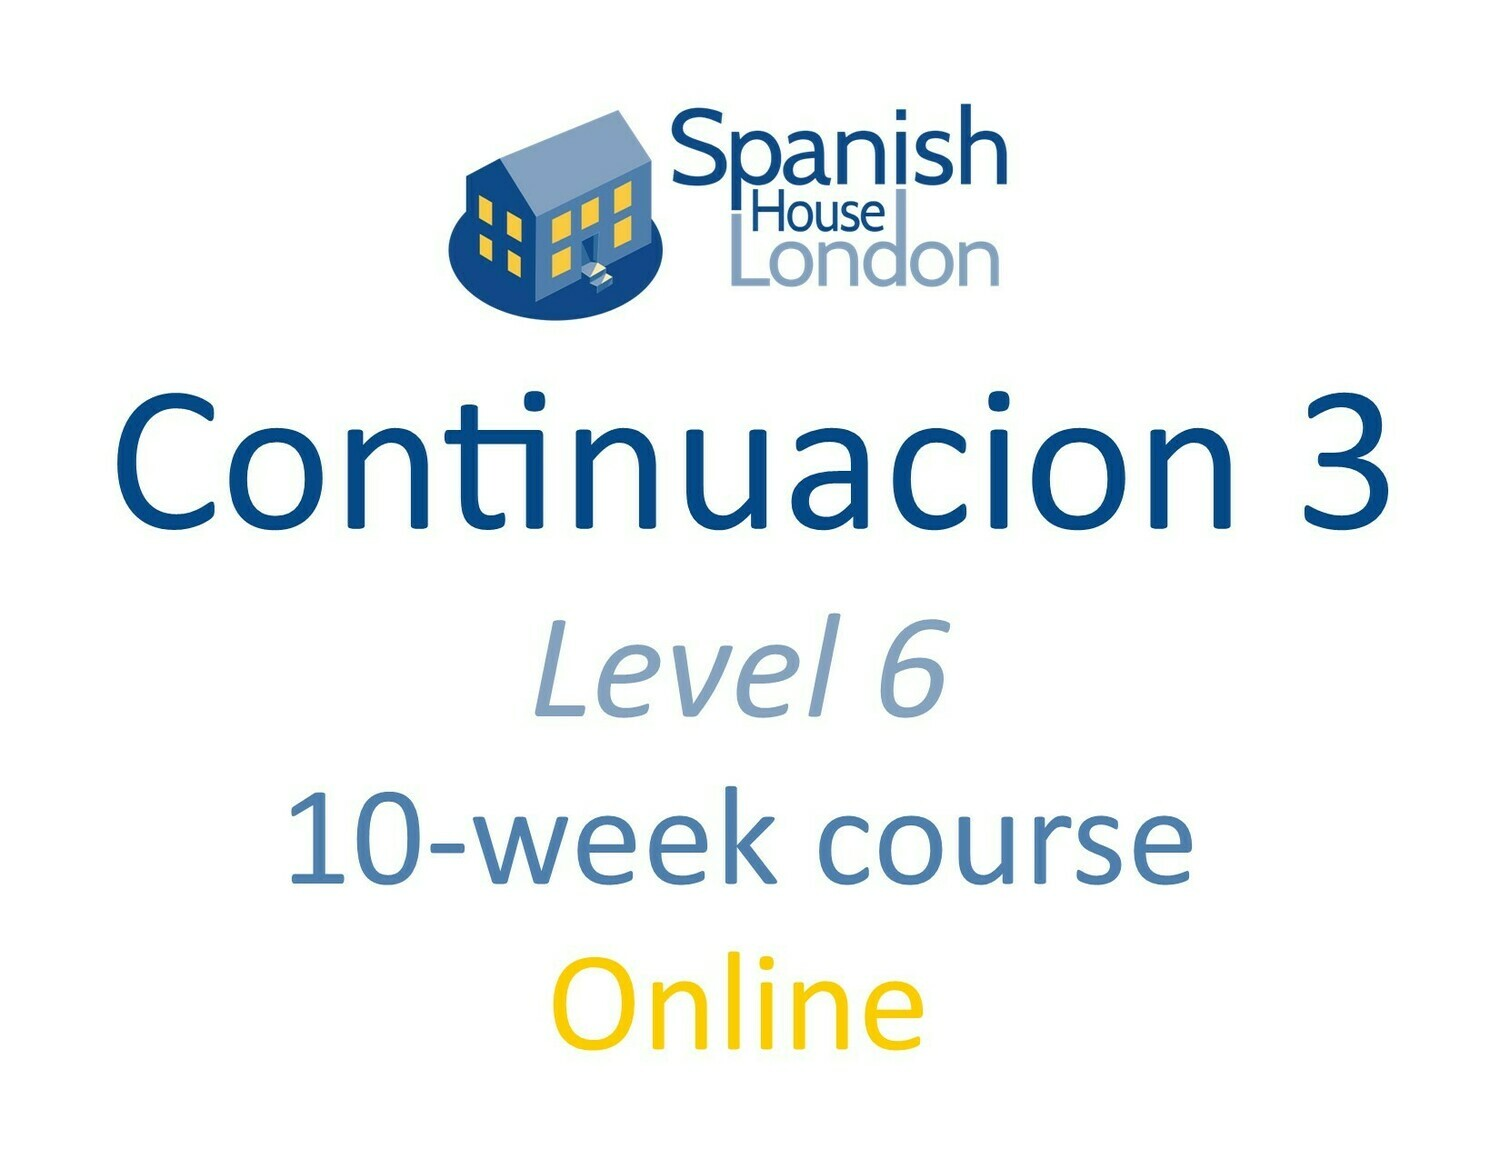 Continuacion 3 Course starting on 7th September at 7.30pm